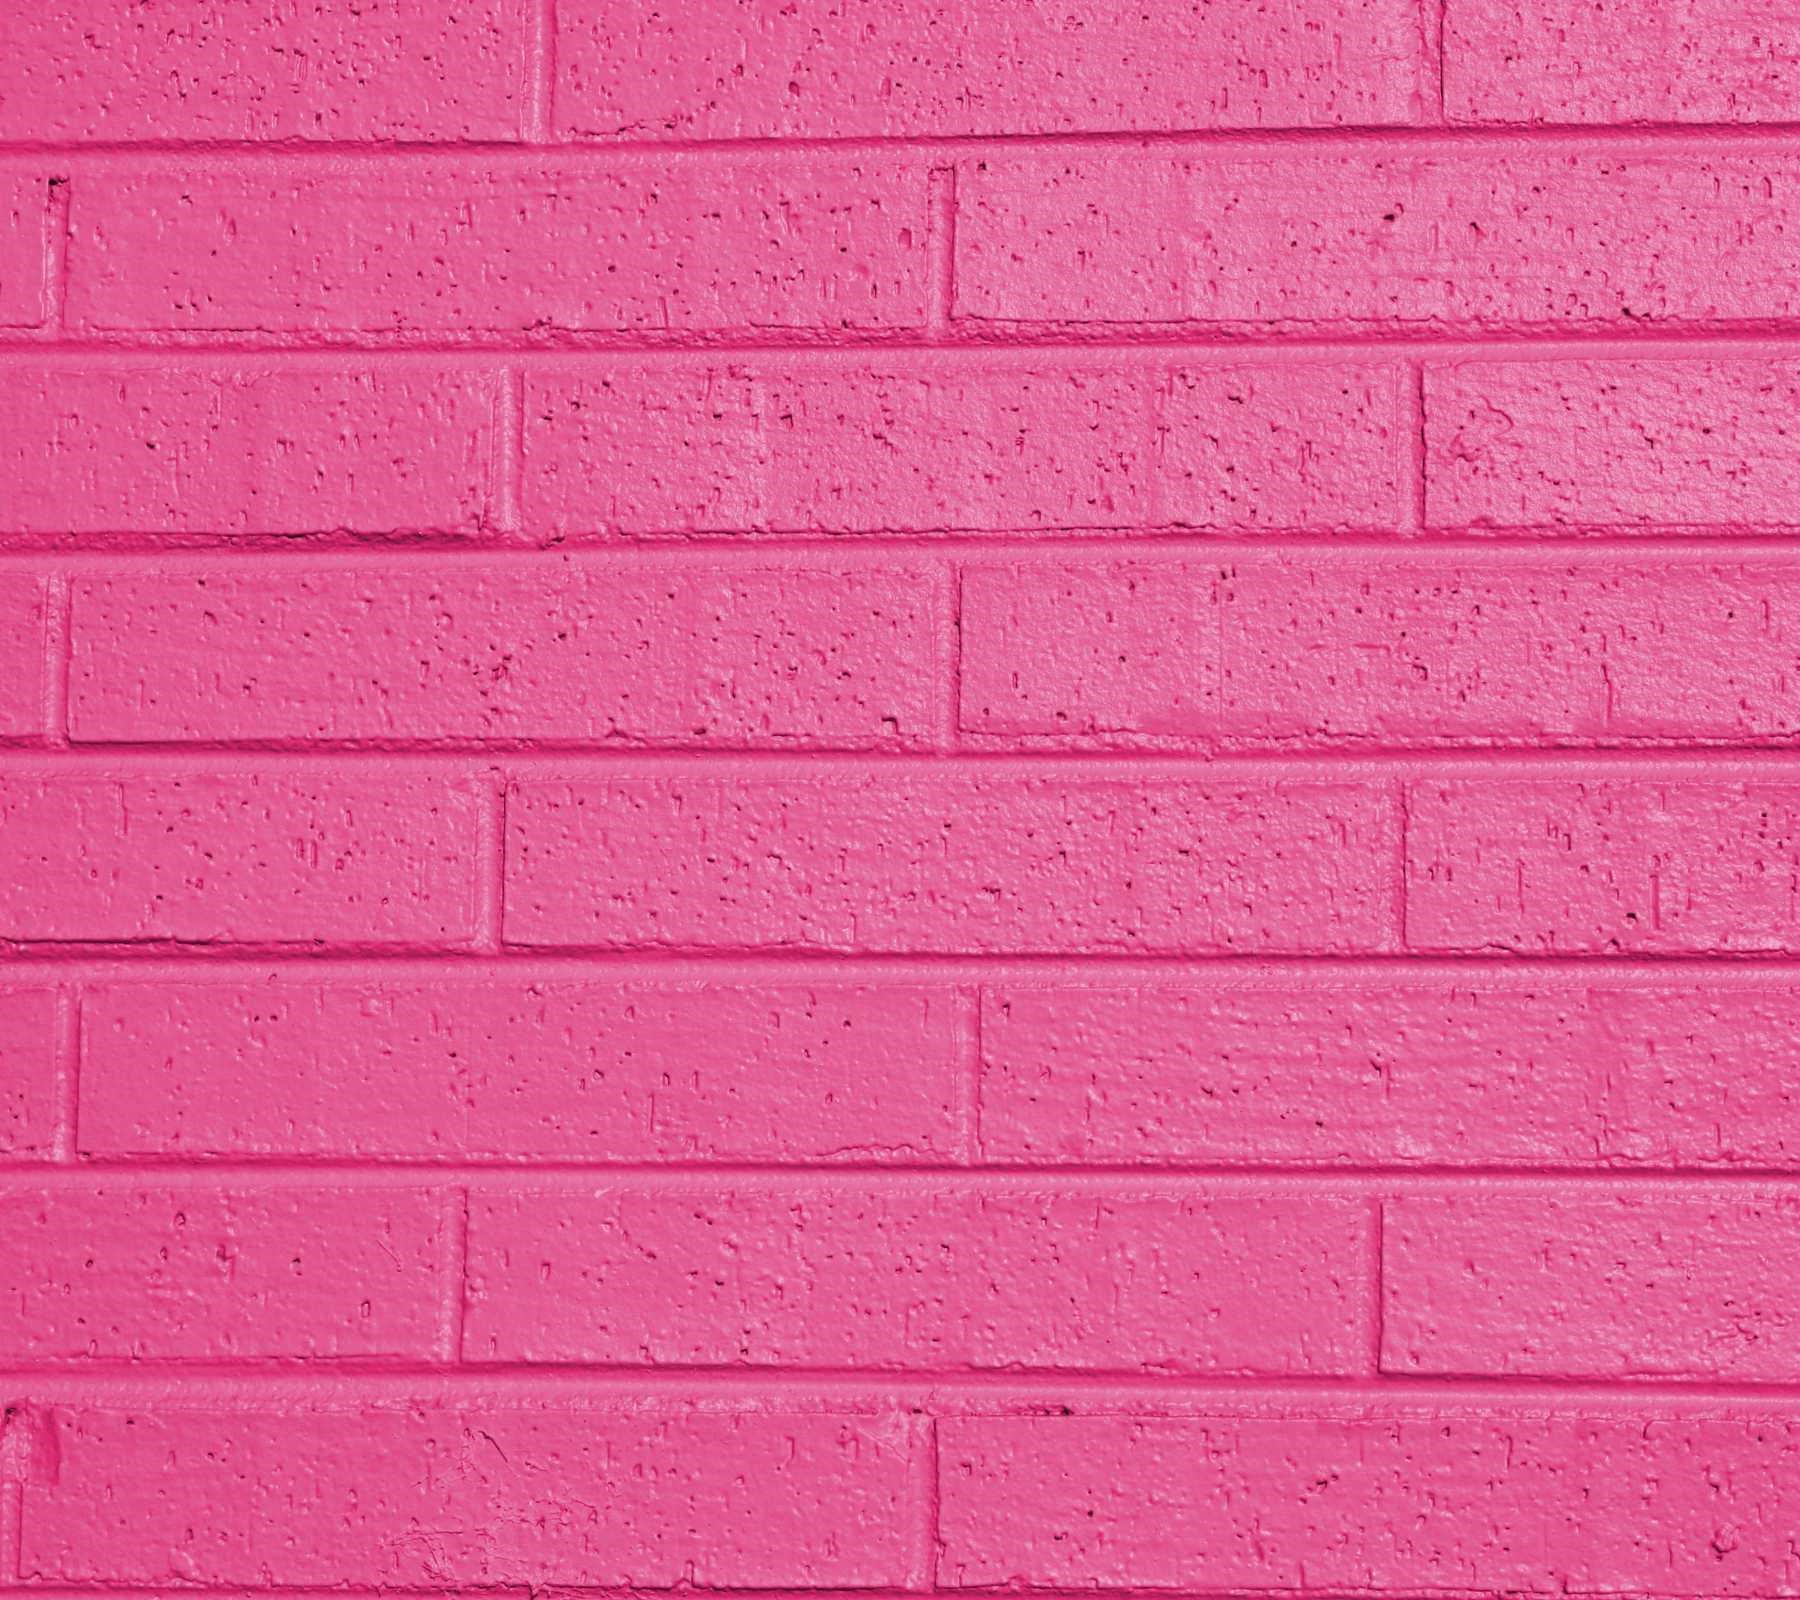 Pink Wallpapers Tumblr | Fotolip.com Rich image and wallpaper